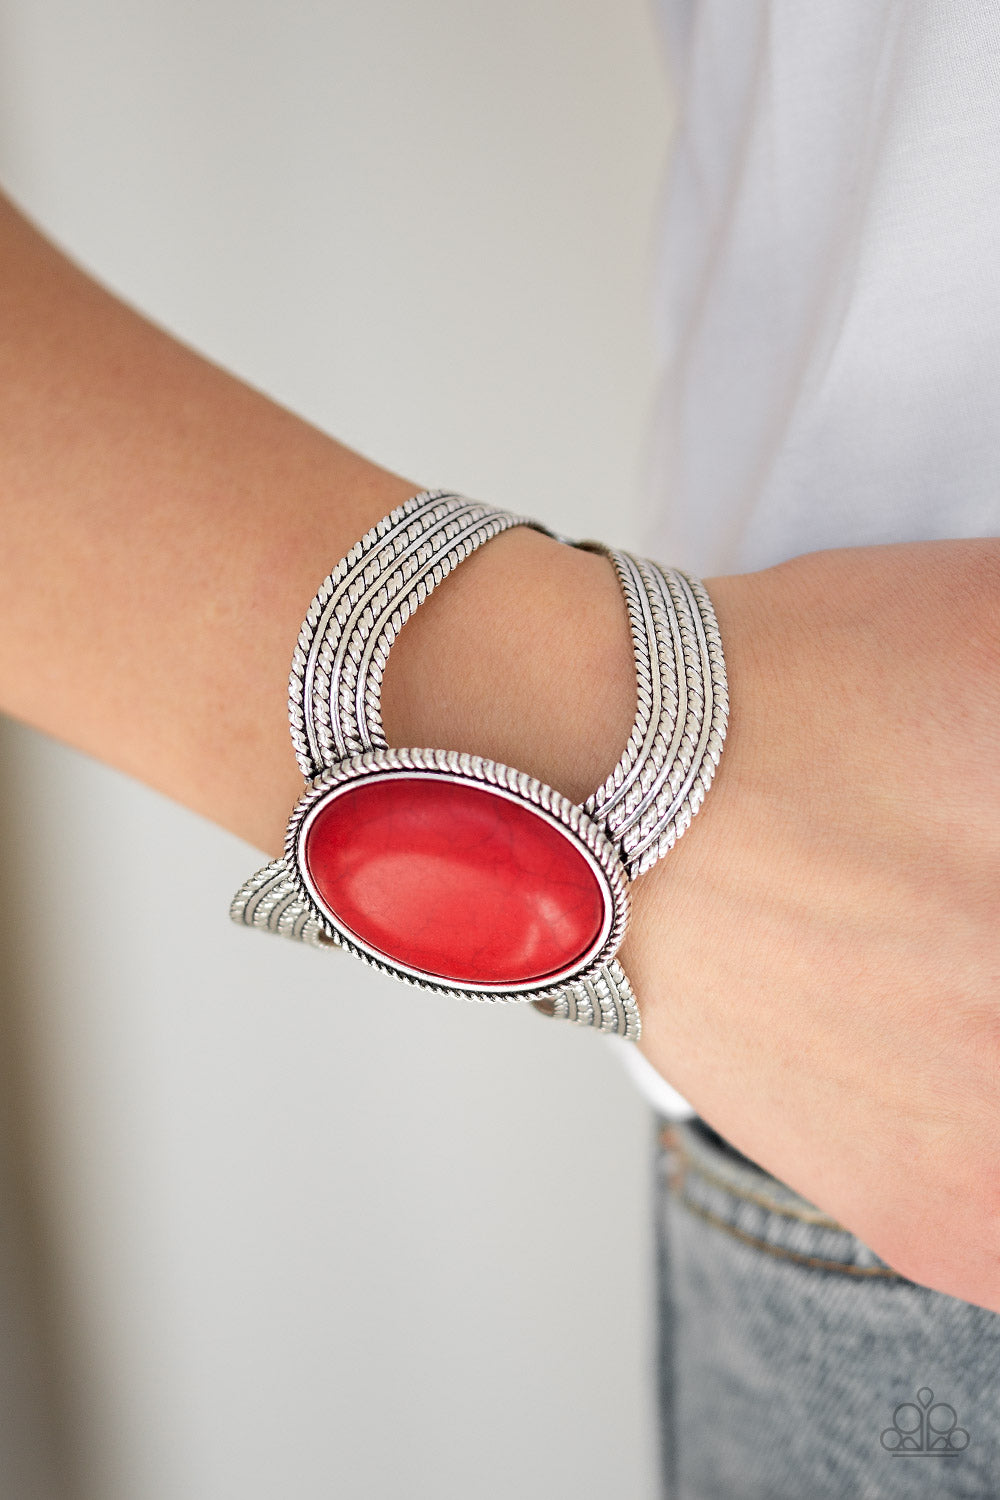 Paparazzi Jewelry & Accessories - Coyote Couture - Red Bracelet. Bling By Titia Boutique